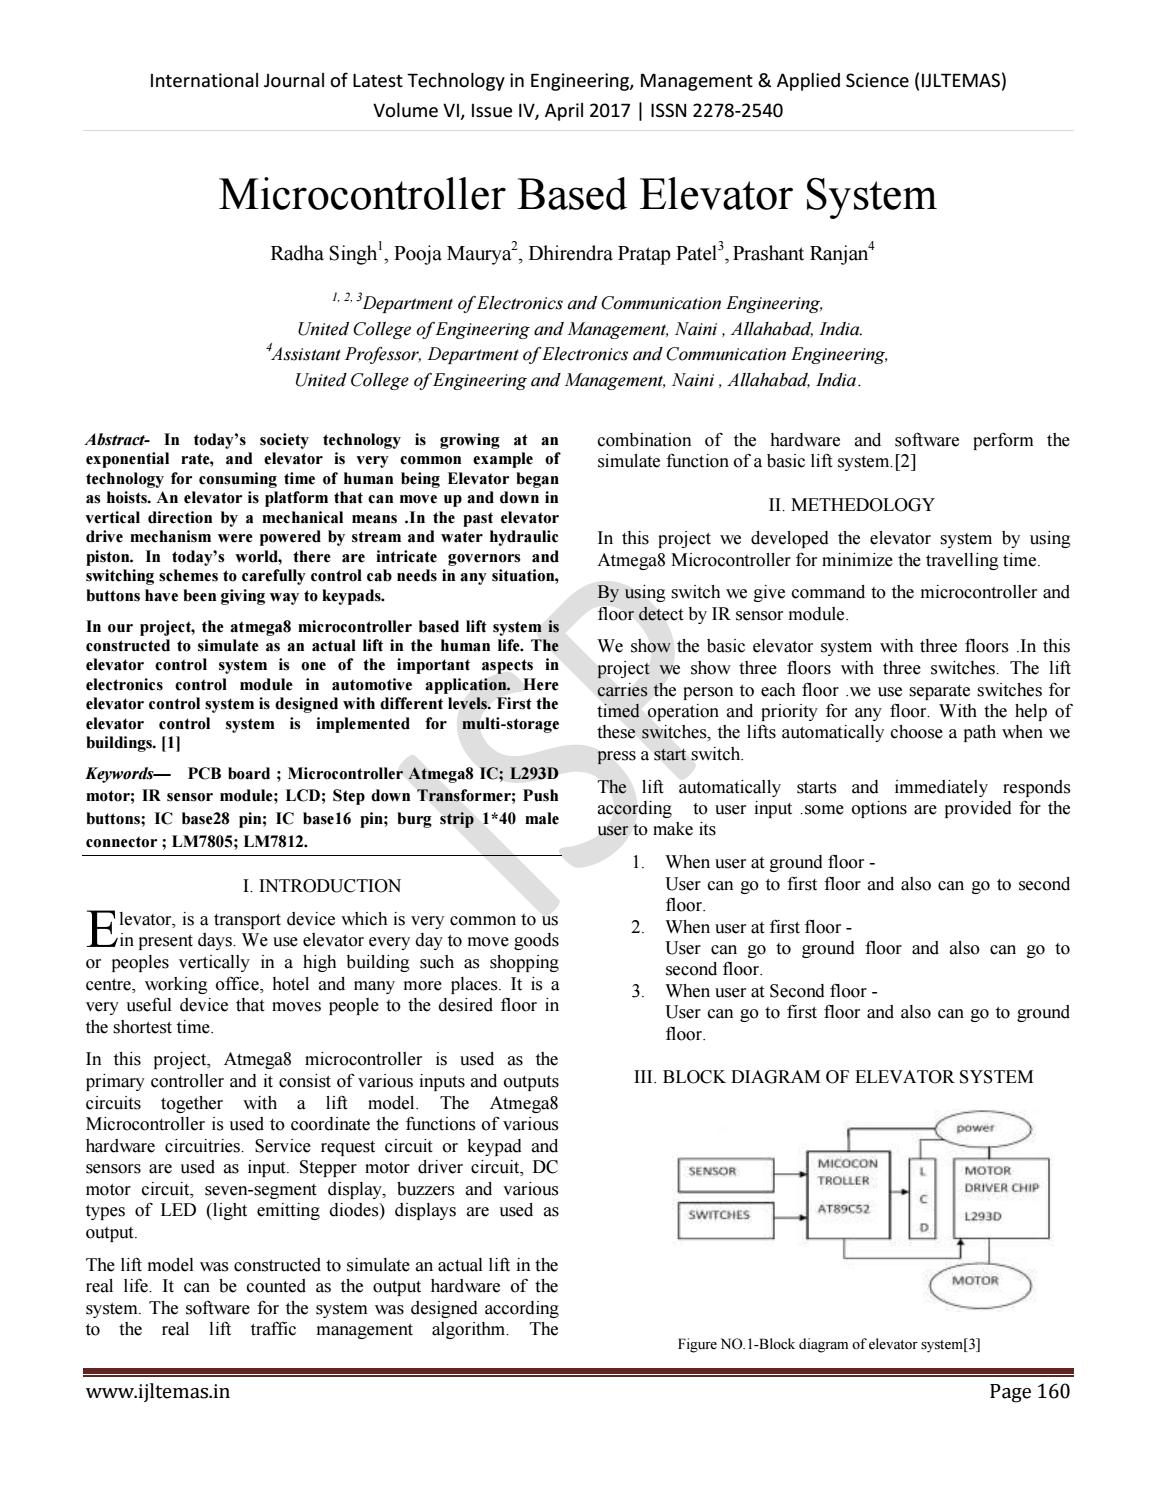 Microcontroller Based Elevator System By International Journal Of Block Diagram Generator Control Latest Technology In Engineering Management Applied Science Issuu